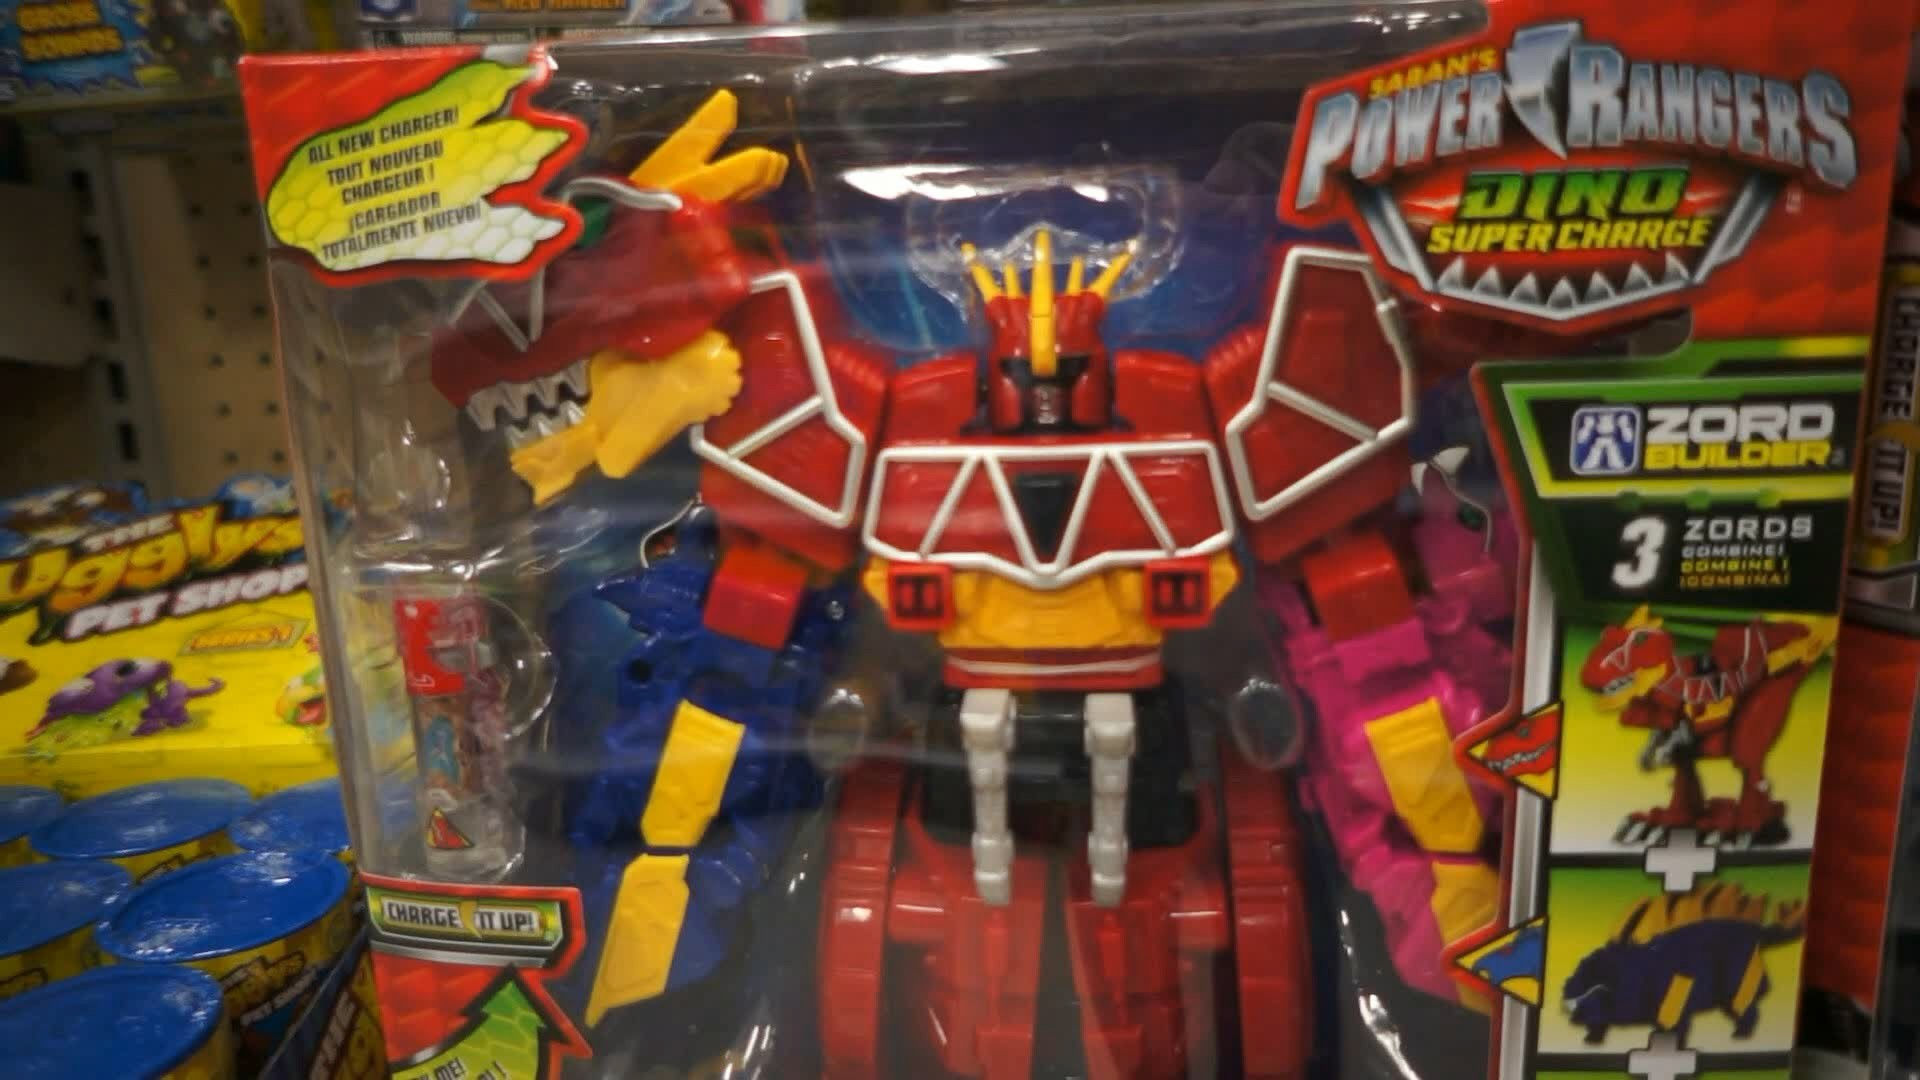 Power Rangers Dino Super Charge Toys at Target Store #1 (December 2015) –  YouTube